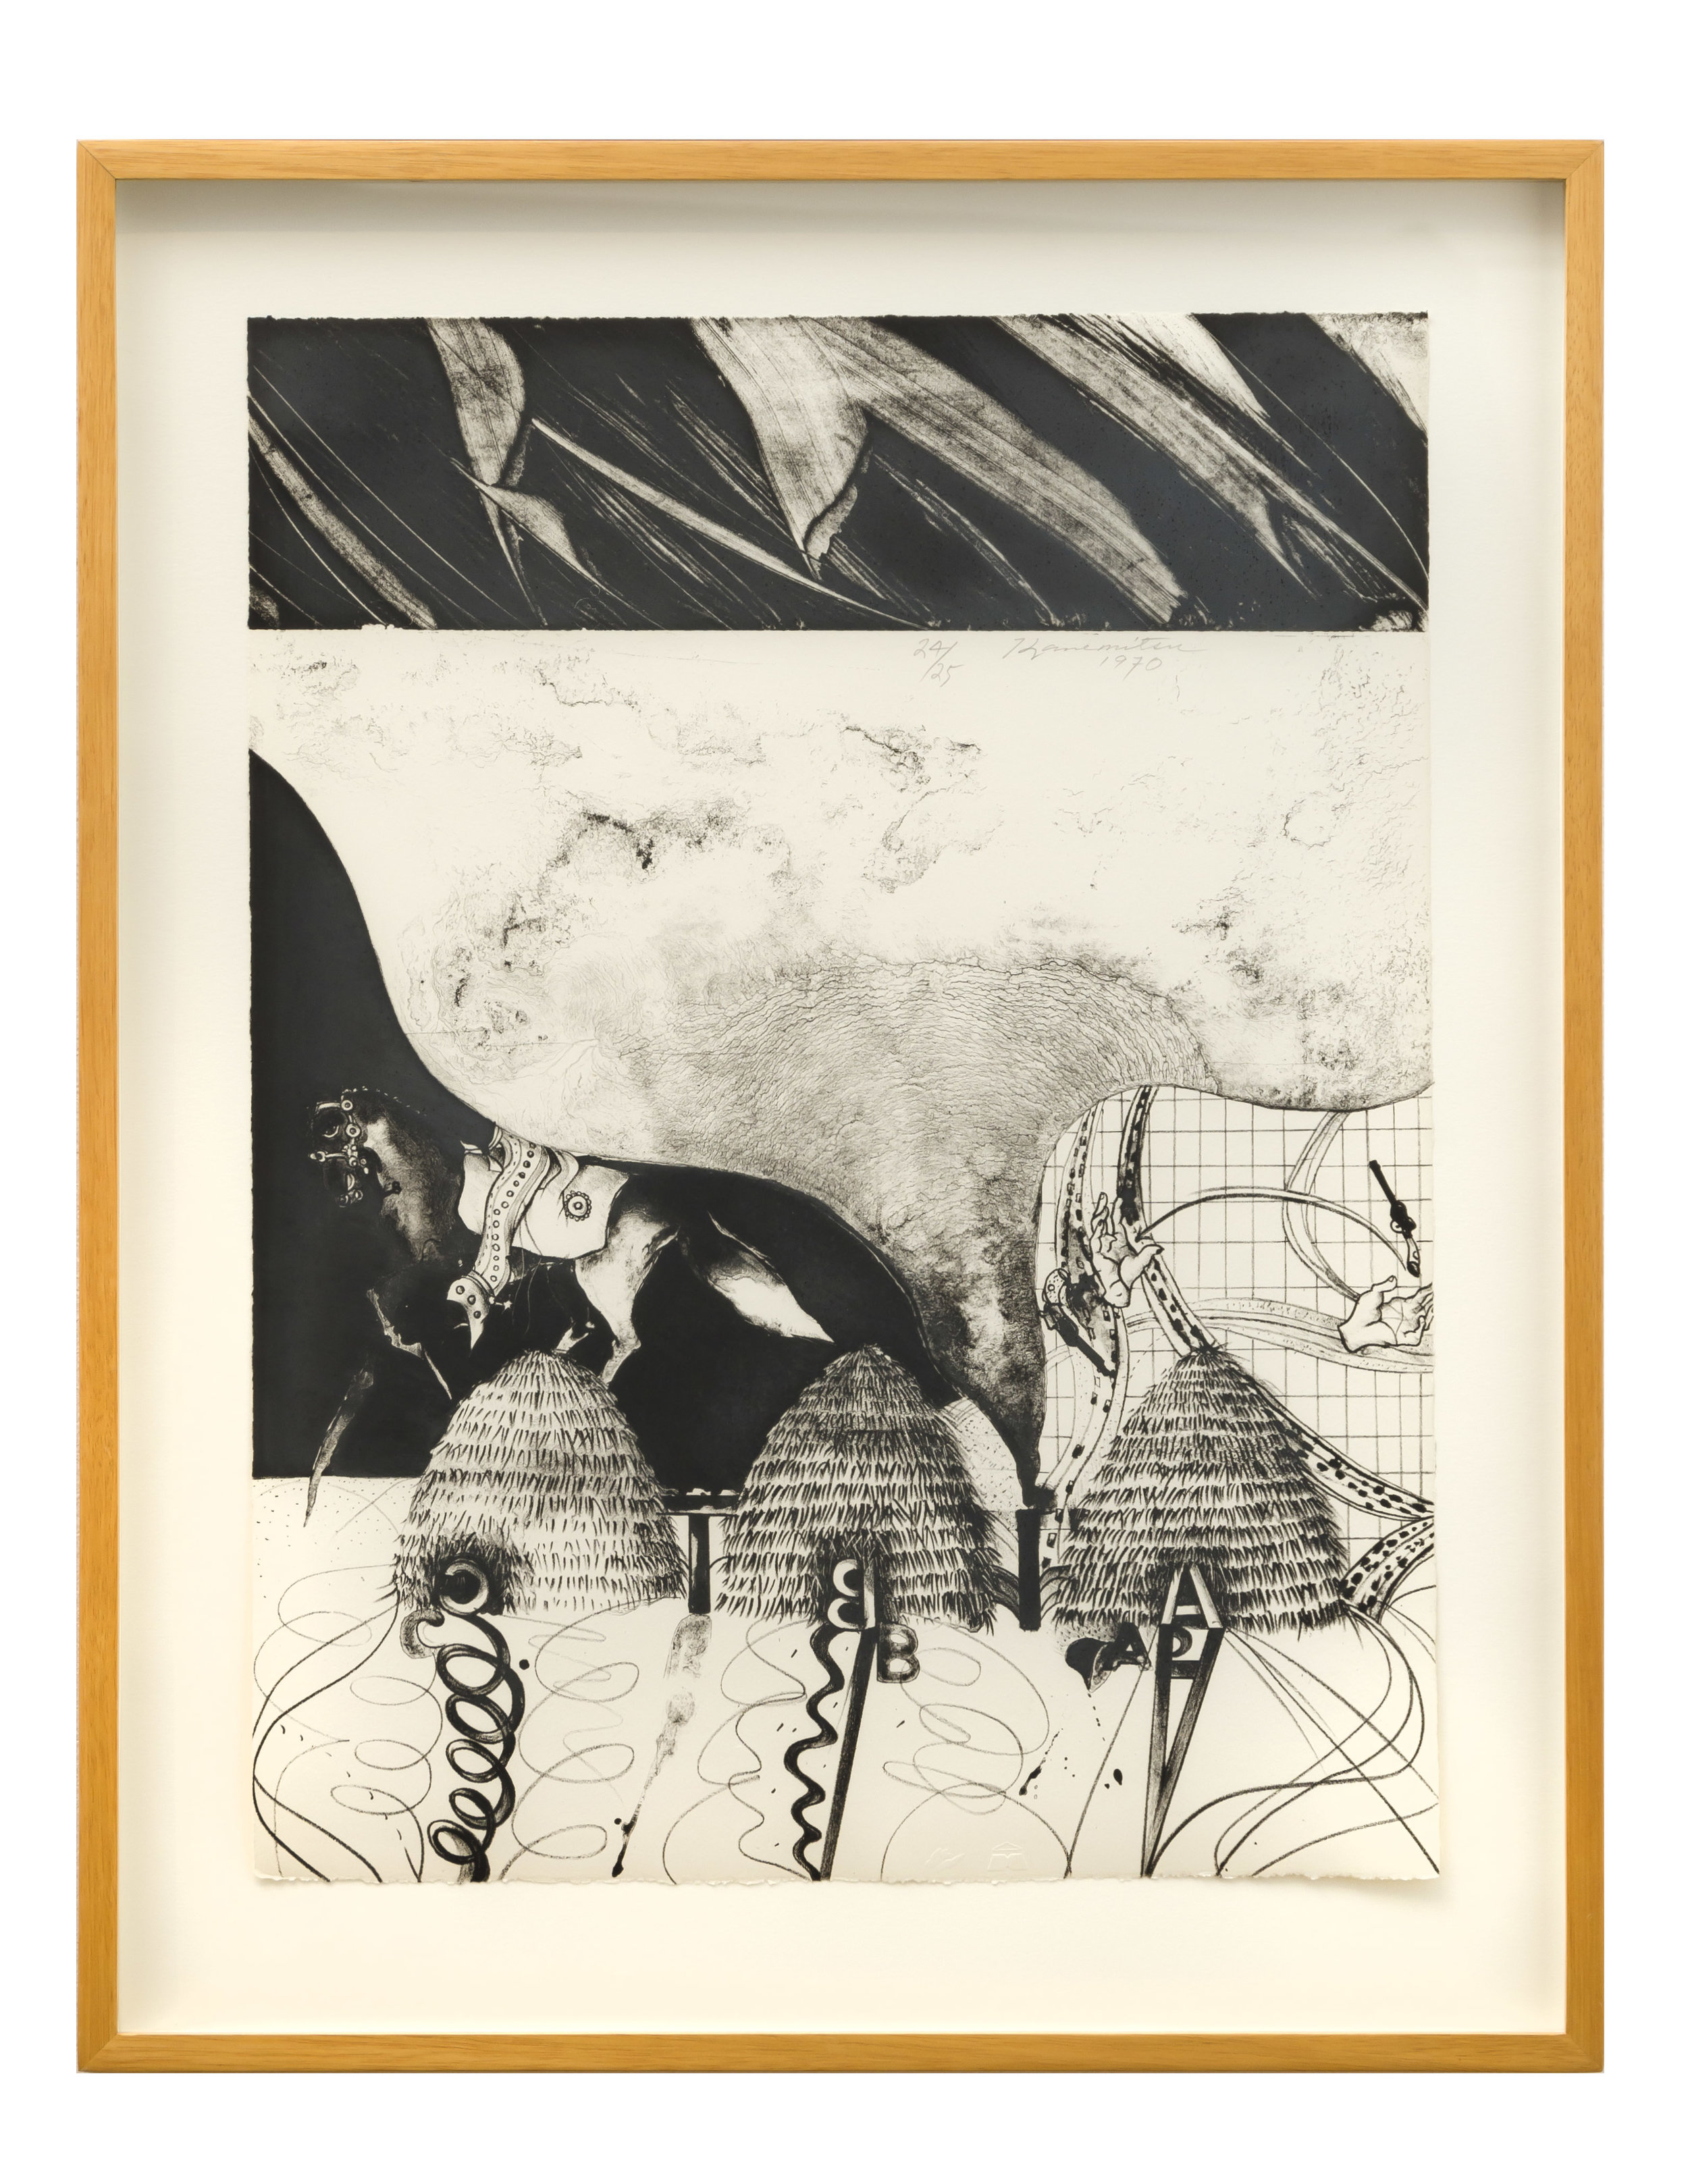 Metamorphosis L.A. II , 1970 Ed. 24/25  lithograph 20 x 15 inches; 50.8 x 38.1 centimeters  $1,200